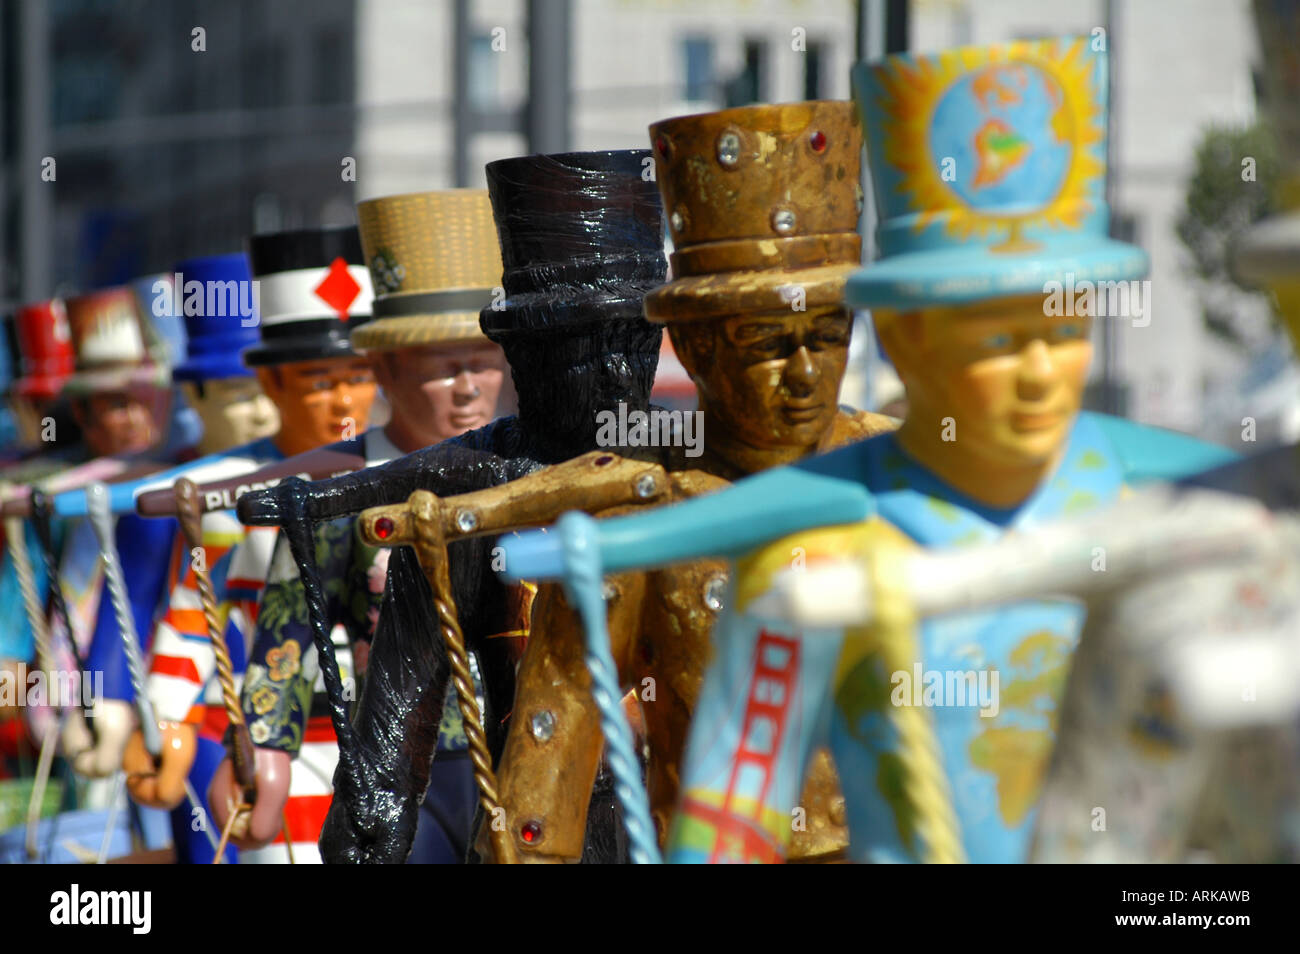 Attraction for tourists: the colorful symbols of Hamburg - the 'Hans Hummel' statues. Hamburg, Germany - Stock Image